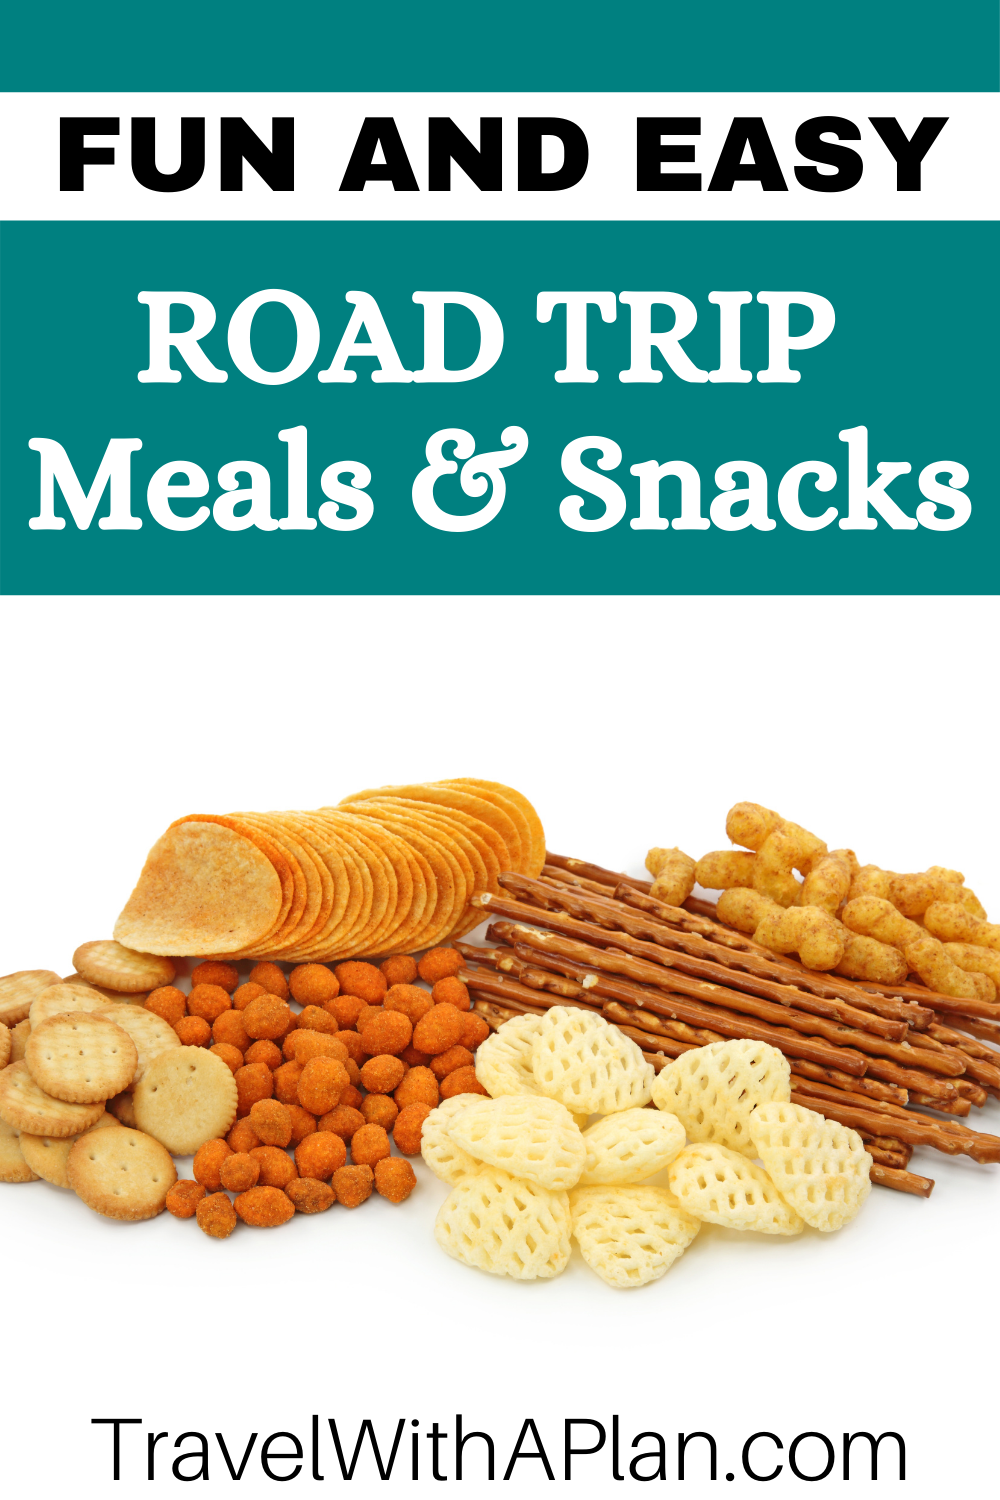 Click here for the ultimate list of fun and easy meals and snacks to pack for a long-haul road trip!  Our road trip food list will help keep everyone satisfied and fed while on the road!  #roadtrip #familytraveltips #roadtripsnacks #familytravel #roadtripfood